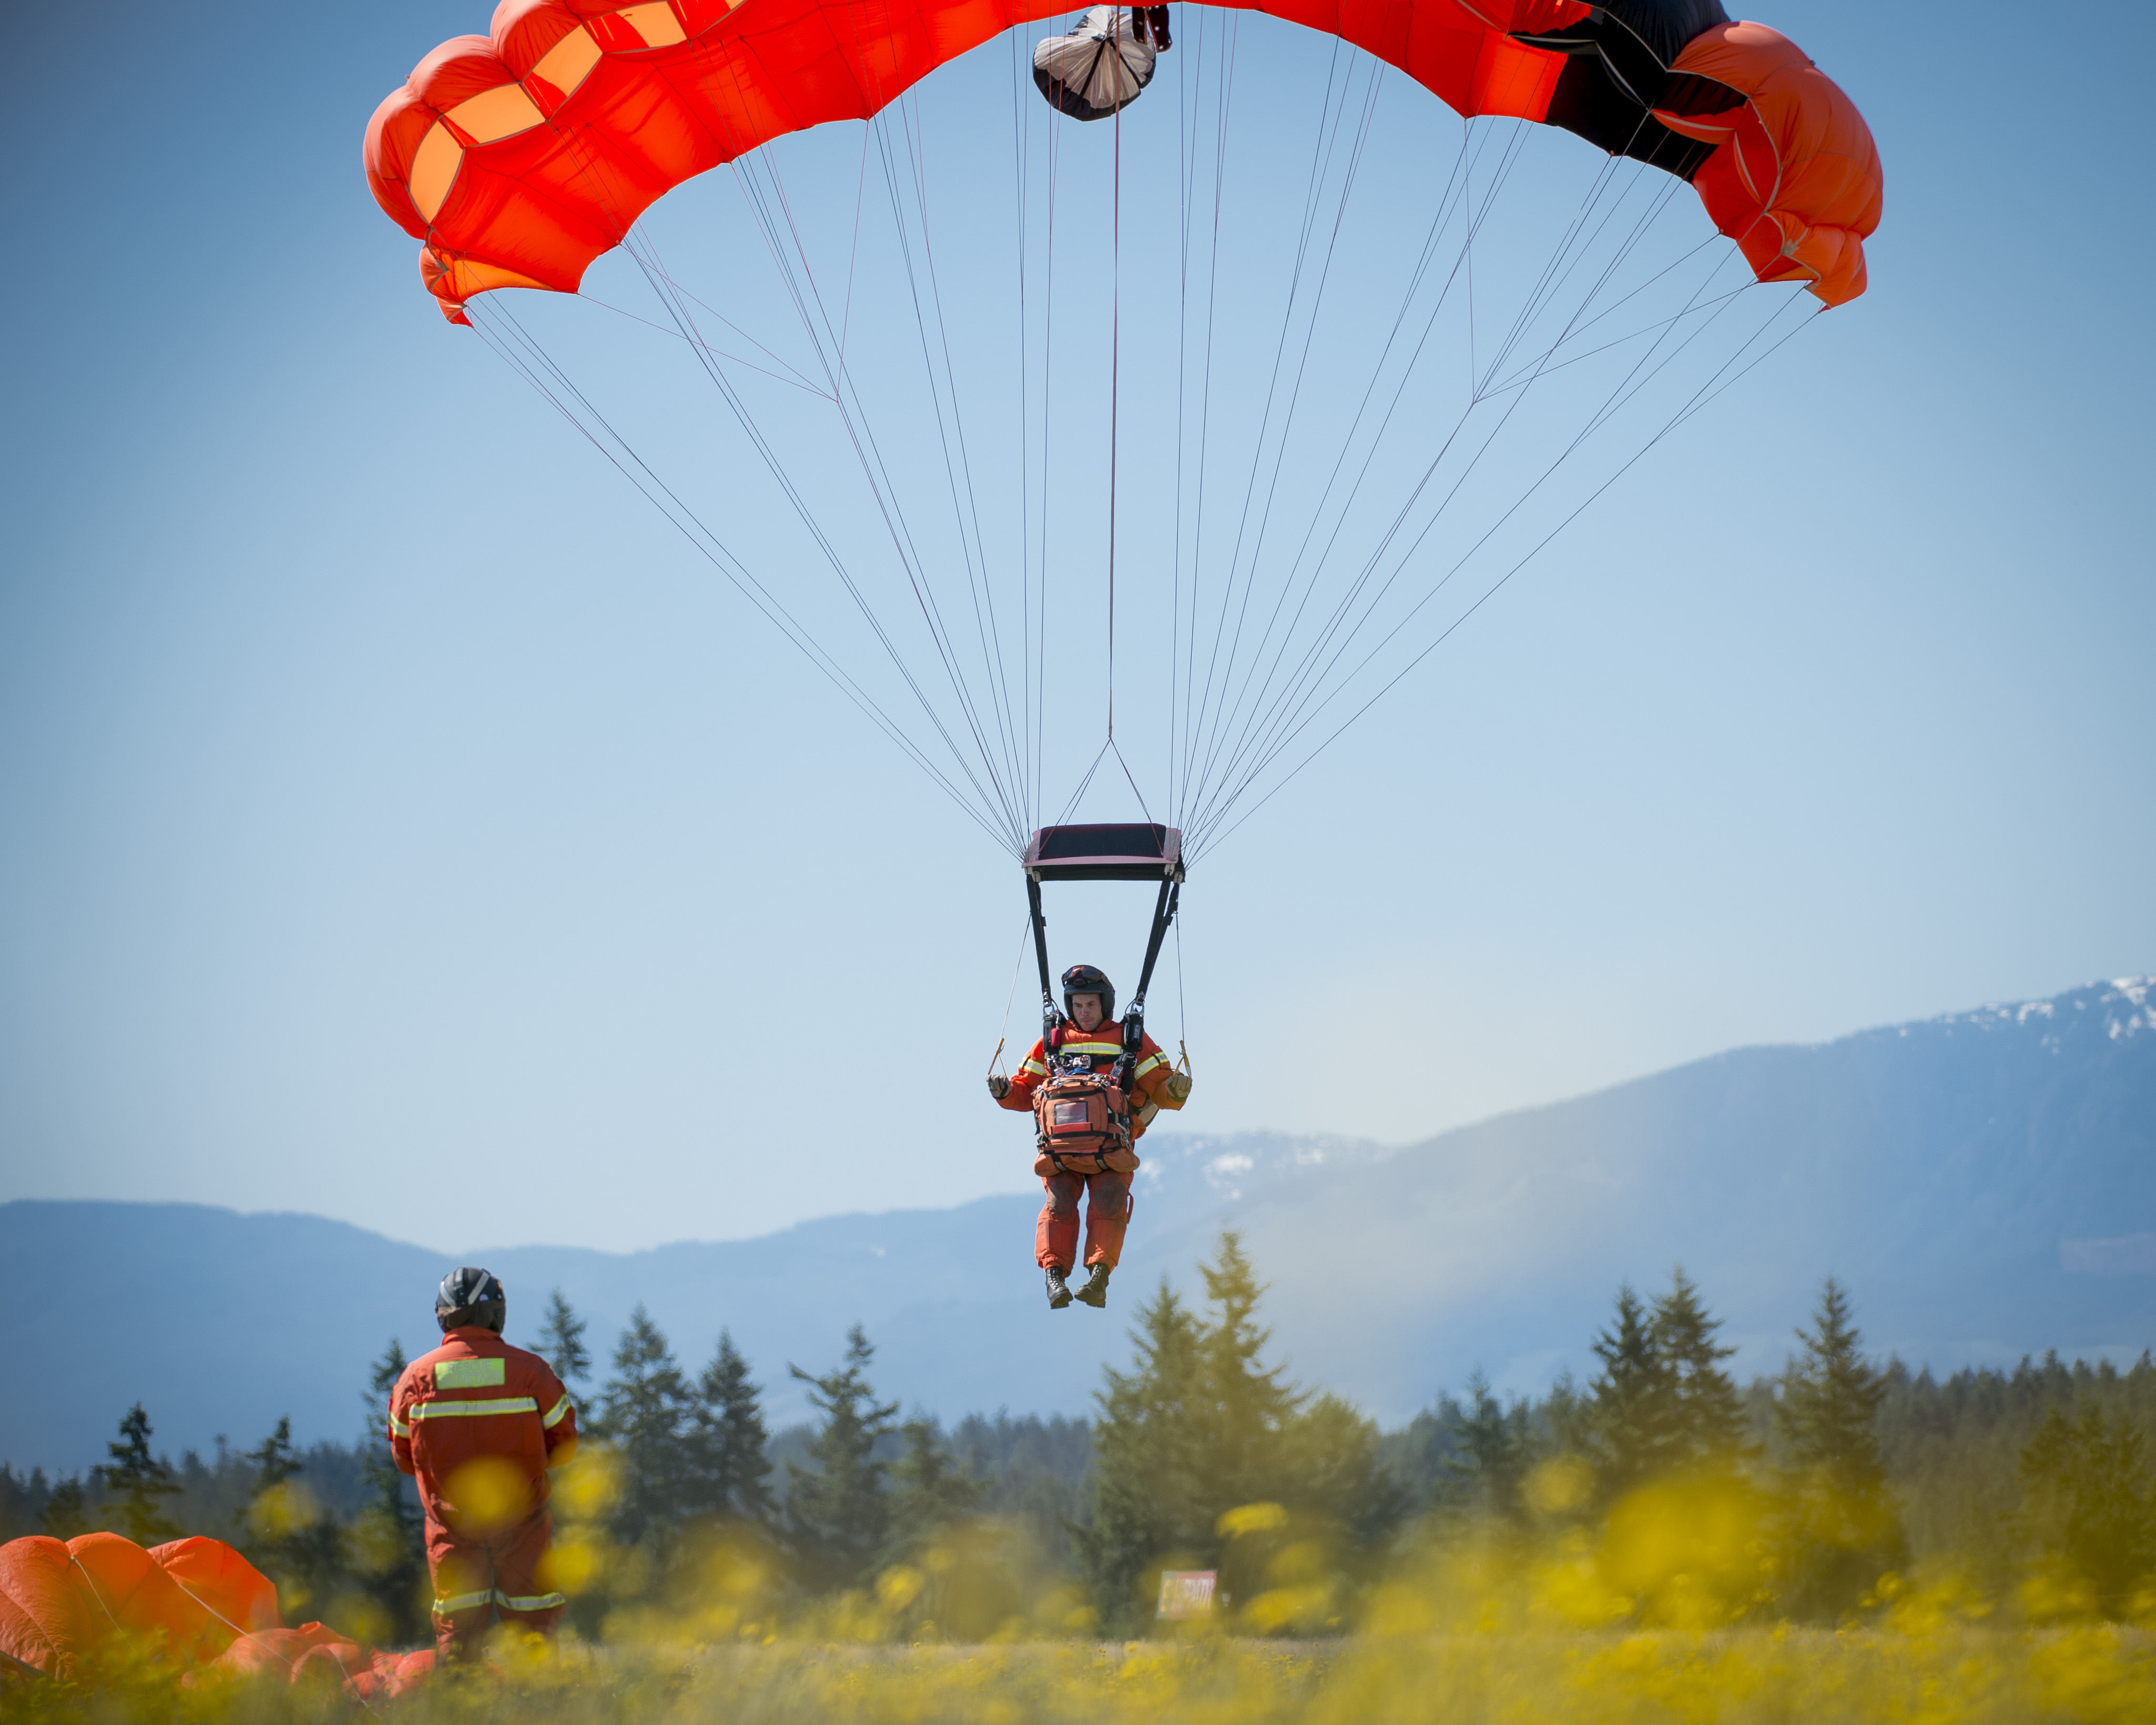 A graduate of Canada's 50th search and rescue technician course successfully parachutes into the course's graduation parade in Comox, British Columbia, on July 6, 2017. PHOTO: Master Seaman Roxanne Wood, CX04-2017-0259-021